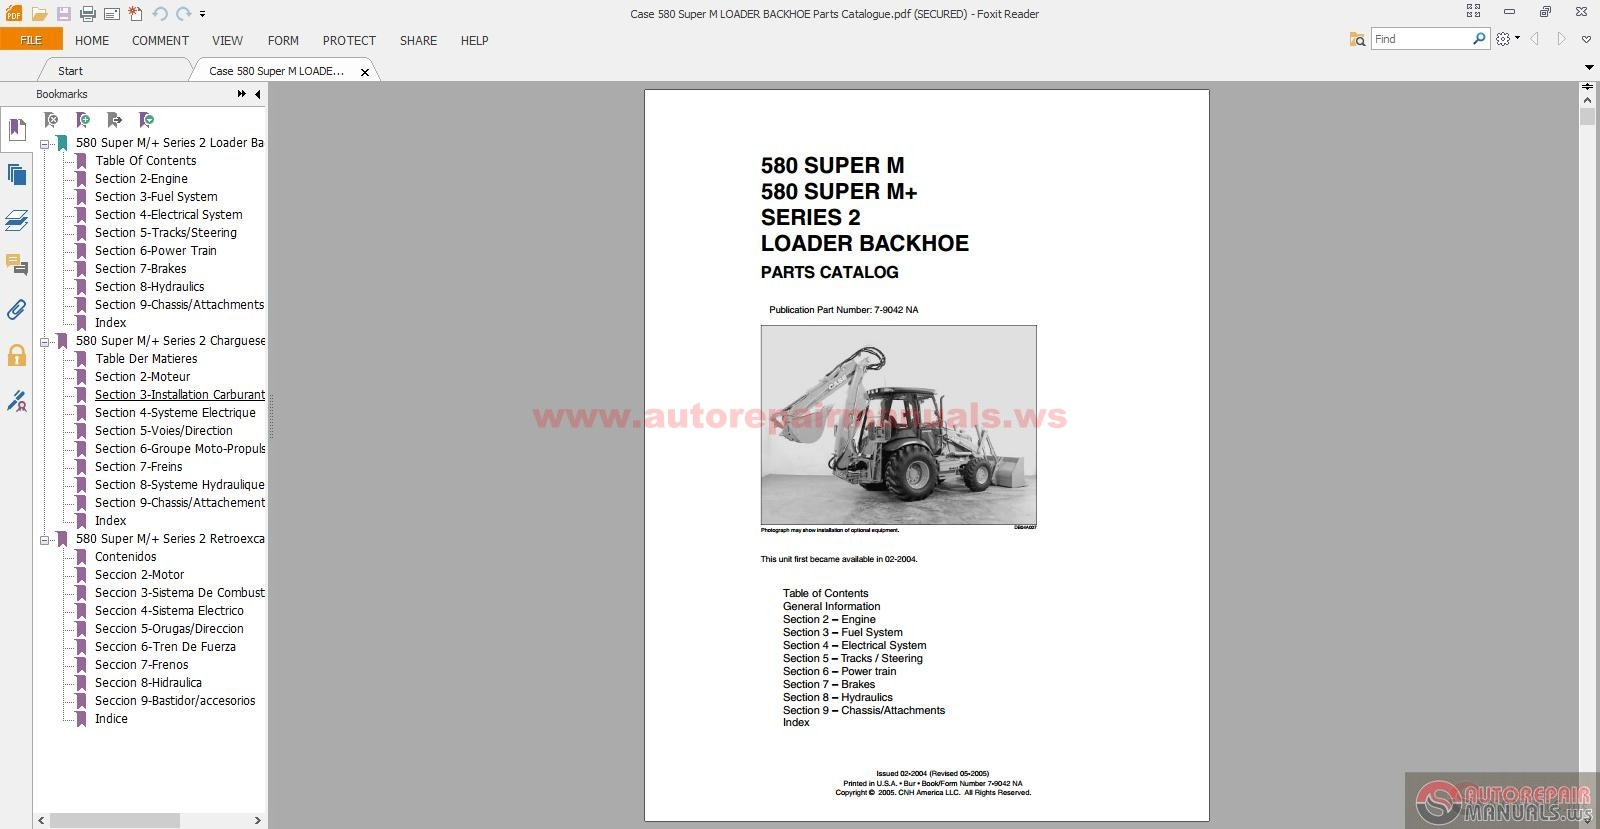 Case 580 Super M Loader Backhoe Parts Catalogue